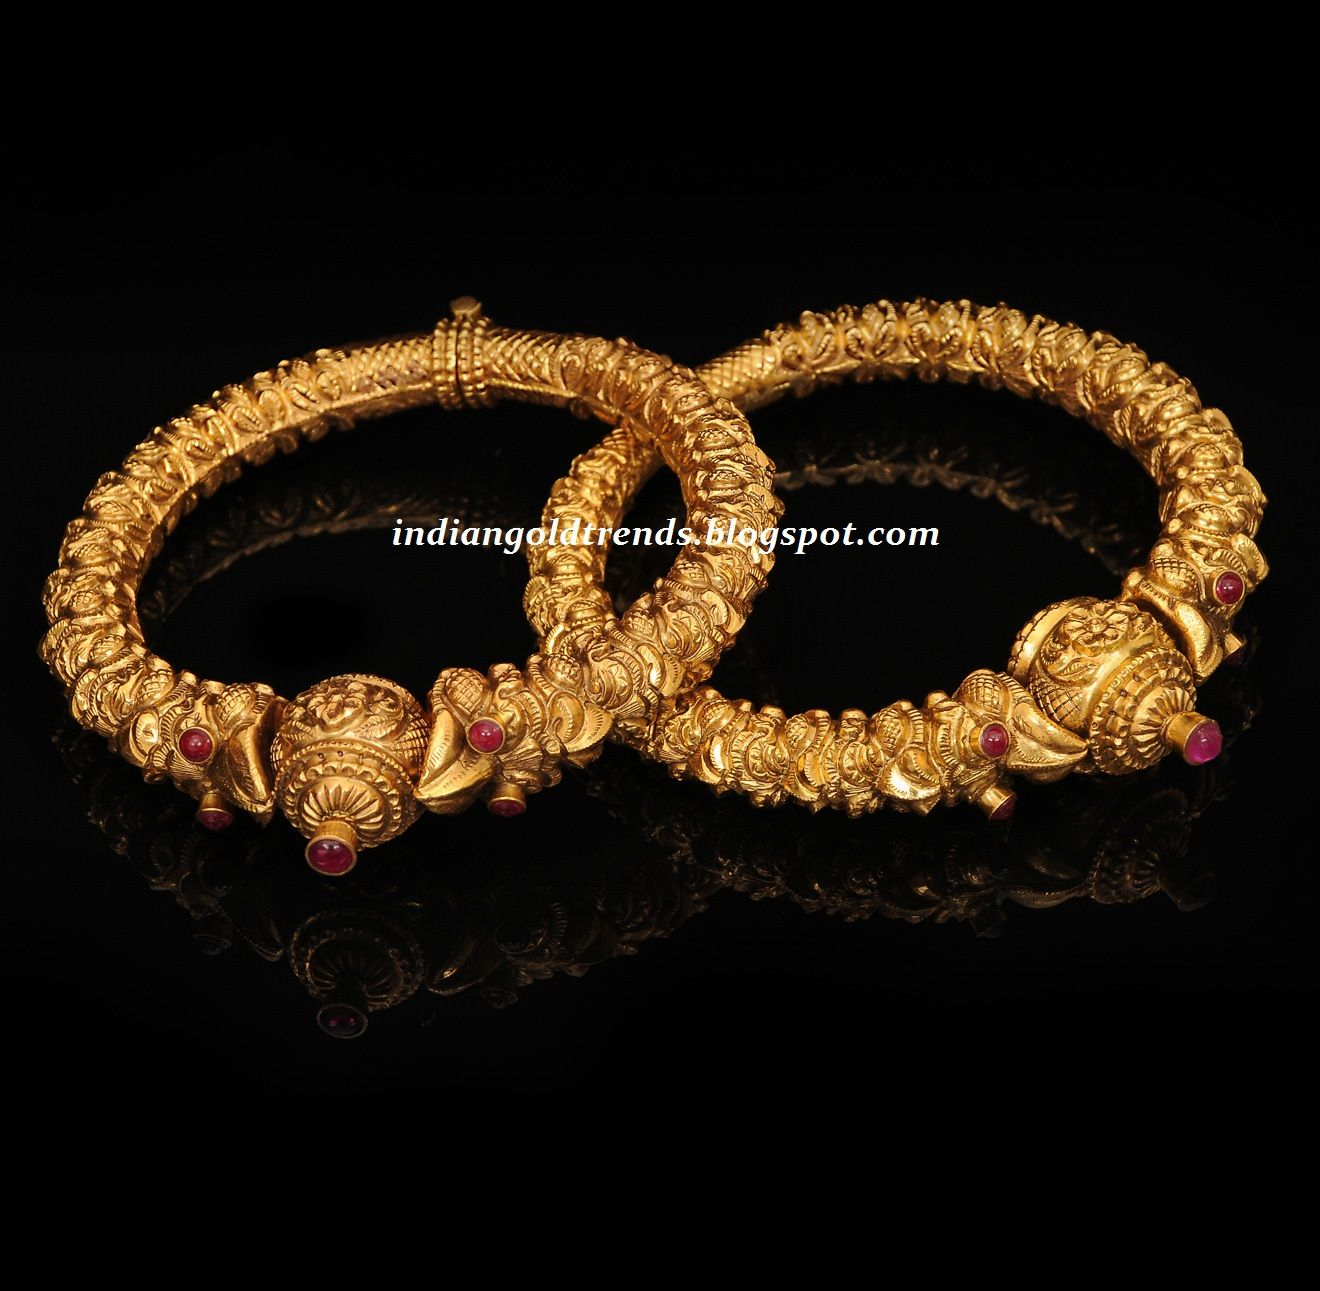 4056 Indian Bridal Jewelry Bollywood New Necklace Ethnic: Latest Indian Gold And Diamond Jewellery Designs: Antique